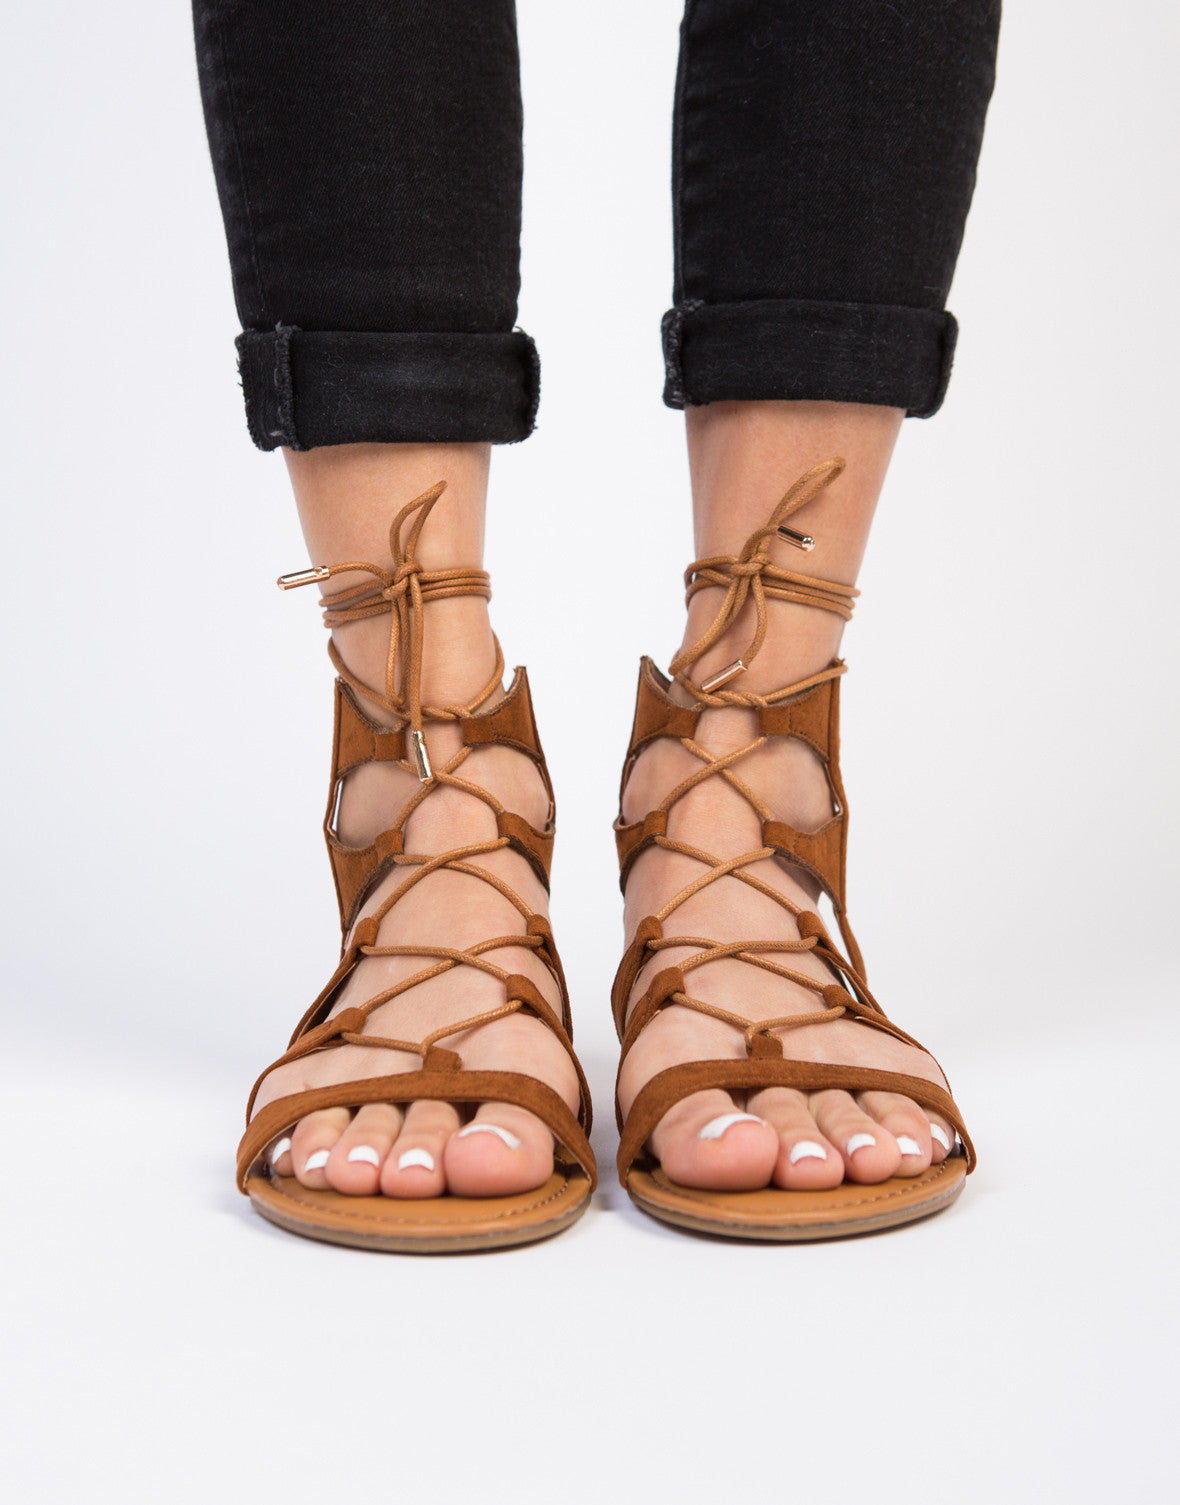 Suede Lace-Up Sandals - Black Strappy